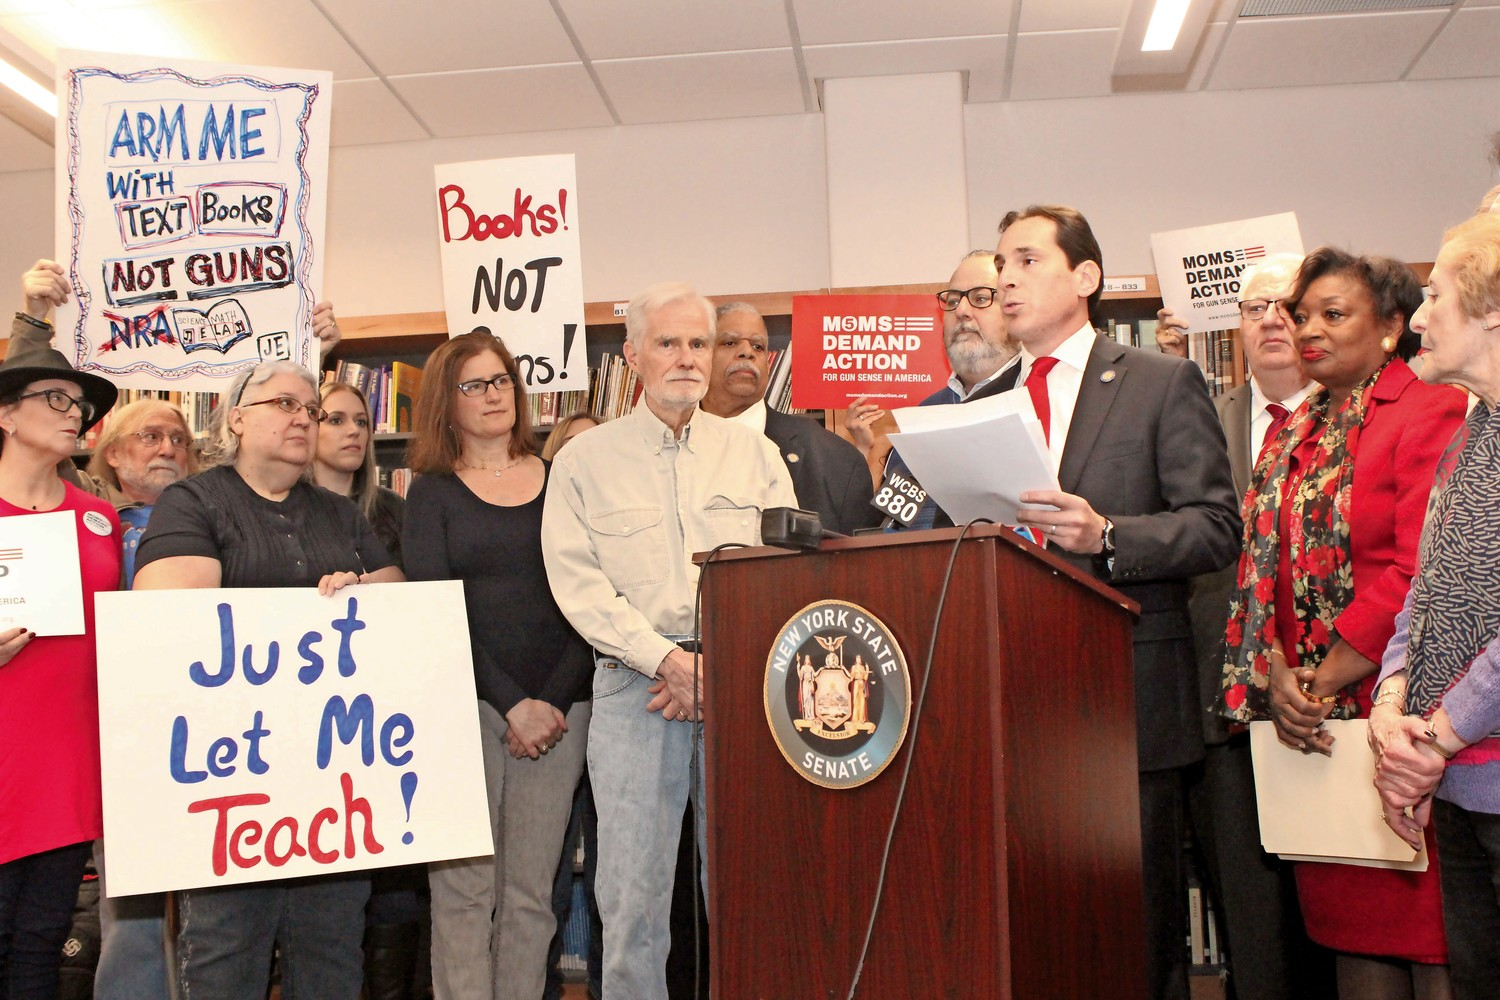 State Sen. Todd Kaminsky joined other Democratic senators, students, teachers and community members last Saturday to announce a proposed bill that would prohibit teachers from carrying guns in school.